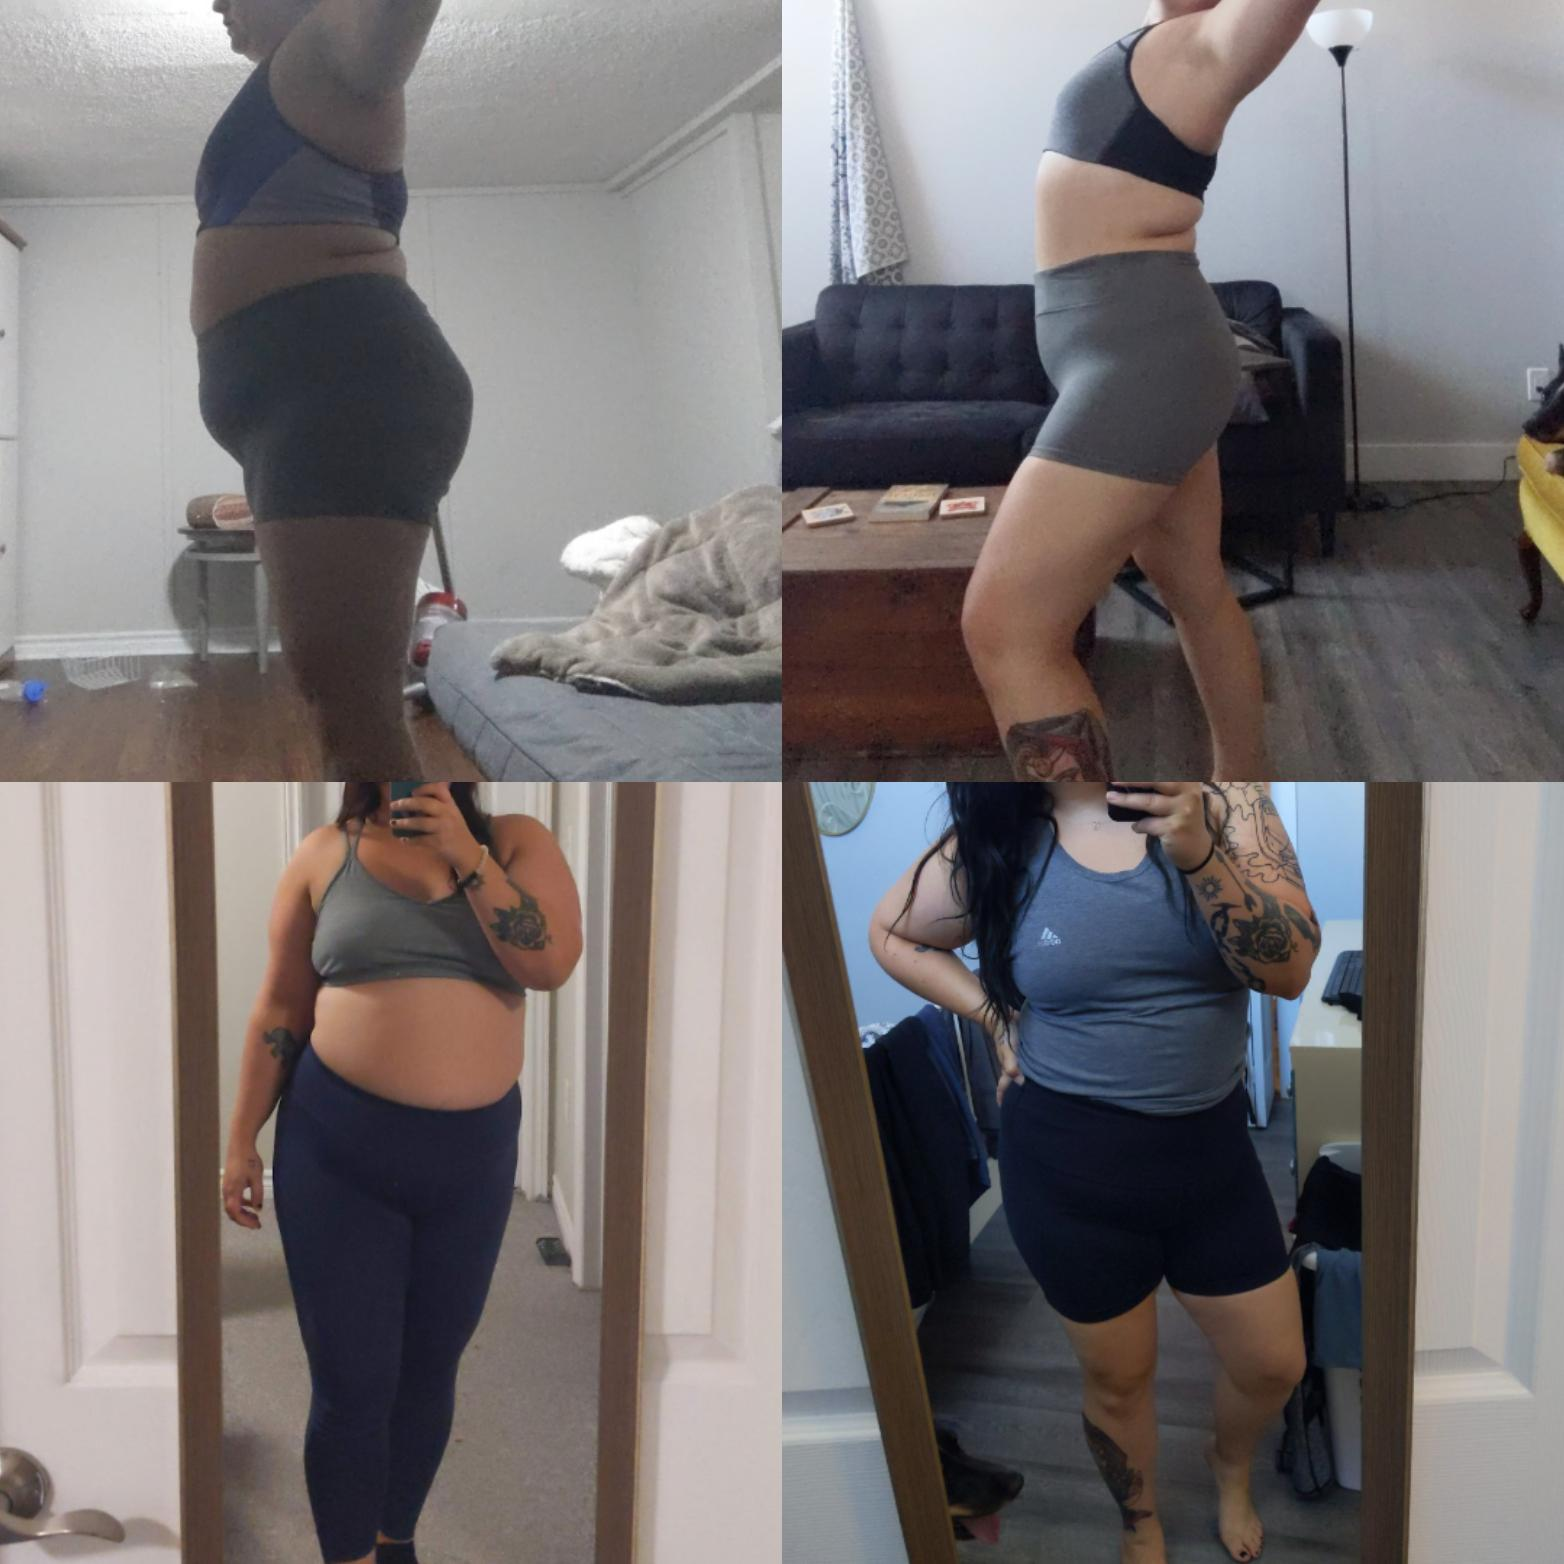 5 foot 4 Female Before and After 68 lbs Weight Loss 265 lbs to 197 lbs